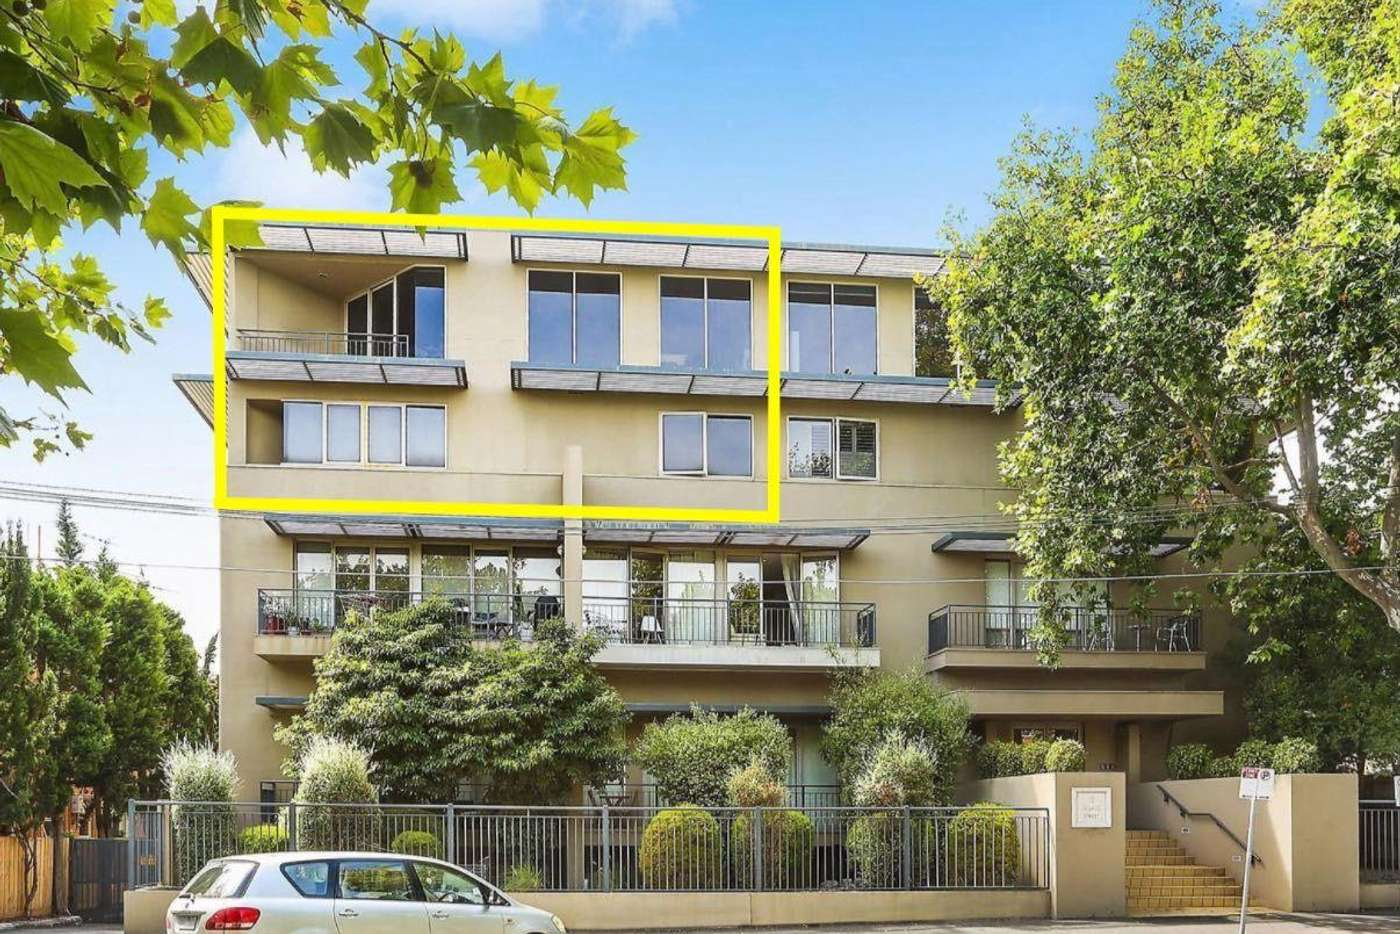 Main view of Homely apartment listing, 22/12 Acland Street, St Kilda VIC 3182